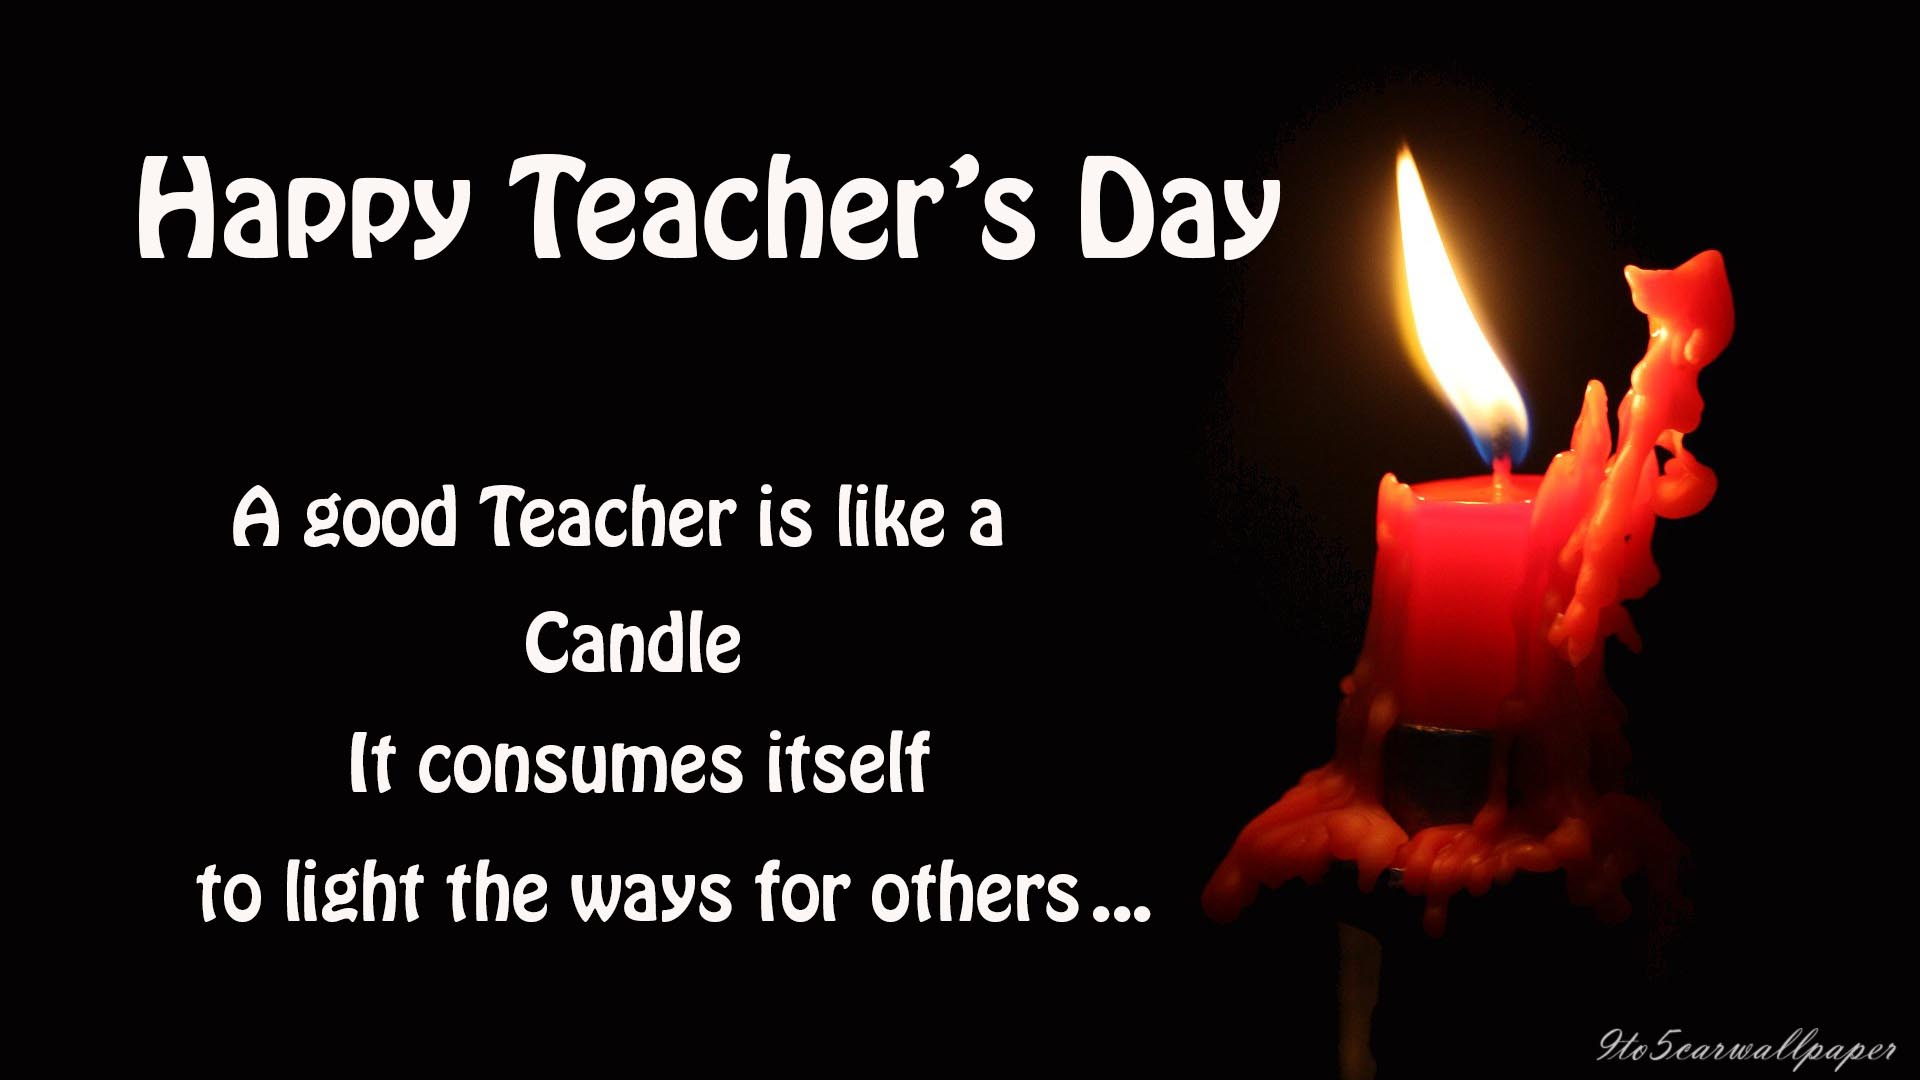 Happy teachers day cards quotes 2017 car wallpapers happy teachers day images quotes hd wallpapers 2017 altavistaventures Choice Image